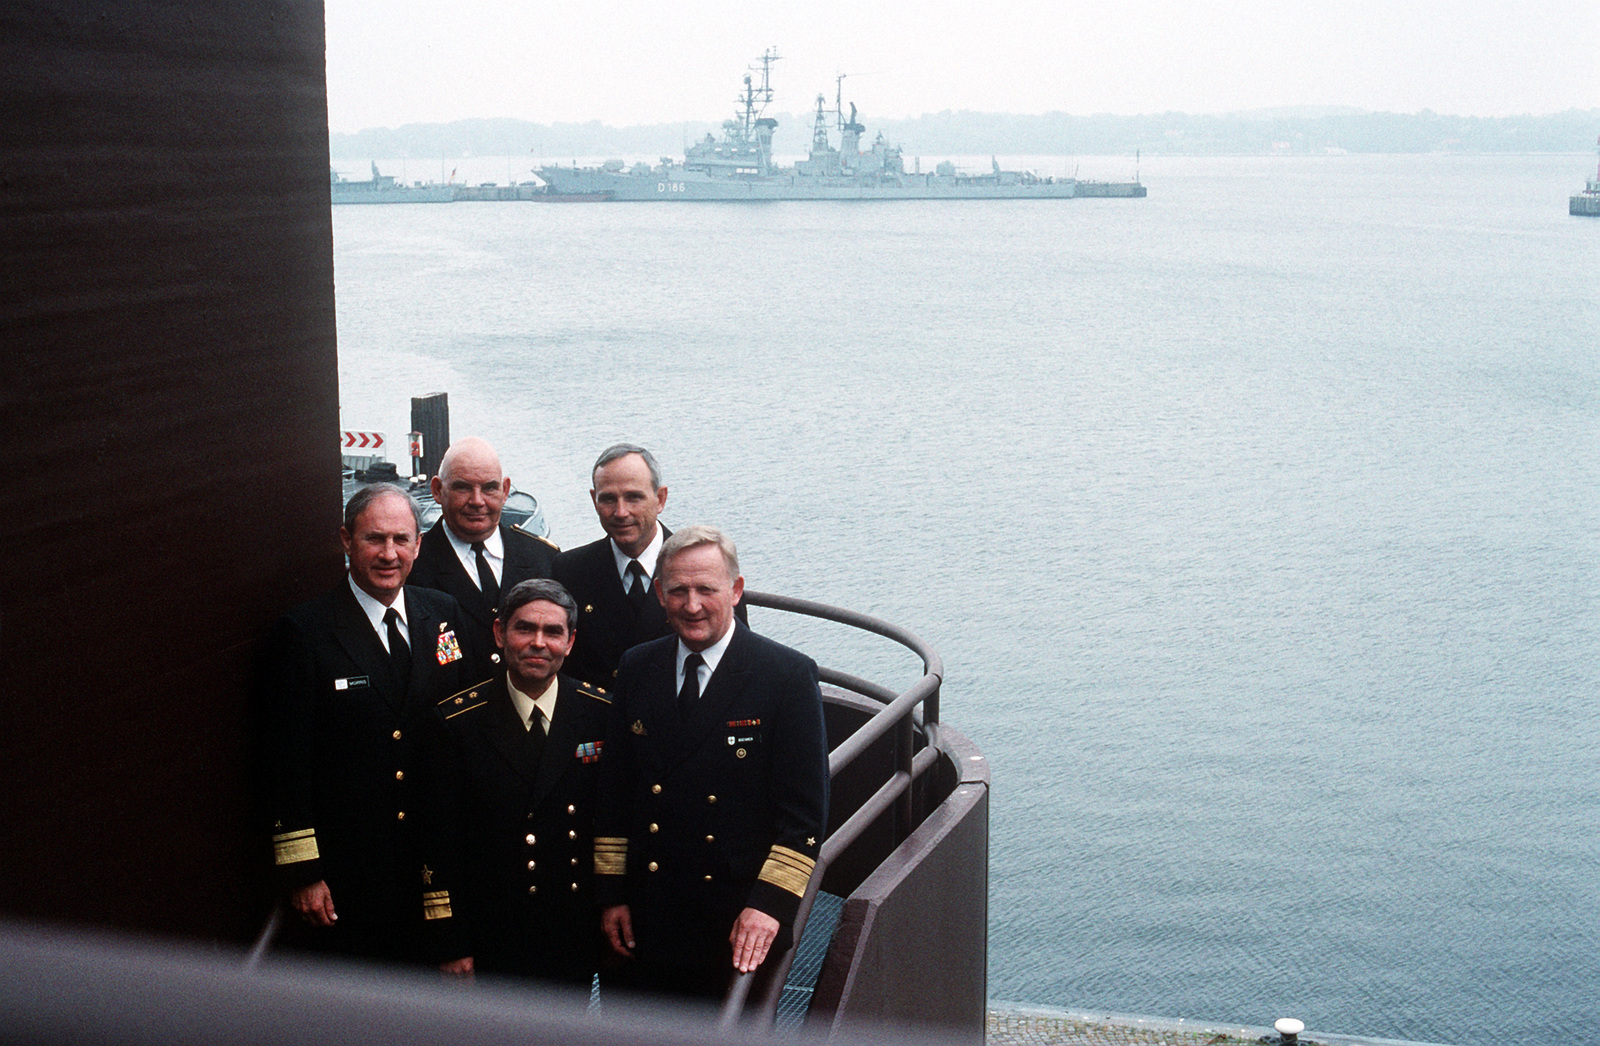 Several officers involved at a BALTOPS 94 press conference pose together on a stair case at the German Naval Officers Club. The officers include (from left) Rear Admiral David R. Morris, Deputy Commander in CHIEF, U.S. Naval Forces Europe, Commodore Ralmundas Baltuska, Commander Lithuanian Naval Flotilla, Russian Vice Admiral Victor Litinov, Deputy Commander in CHIEF Baltic Fleet, Captain Edward E. Hunter, Commander Destroyer Squadron 14, and Vice Admiral Boehmer, Commander in CHIEF German Fleet